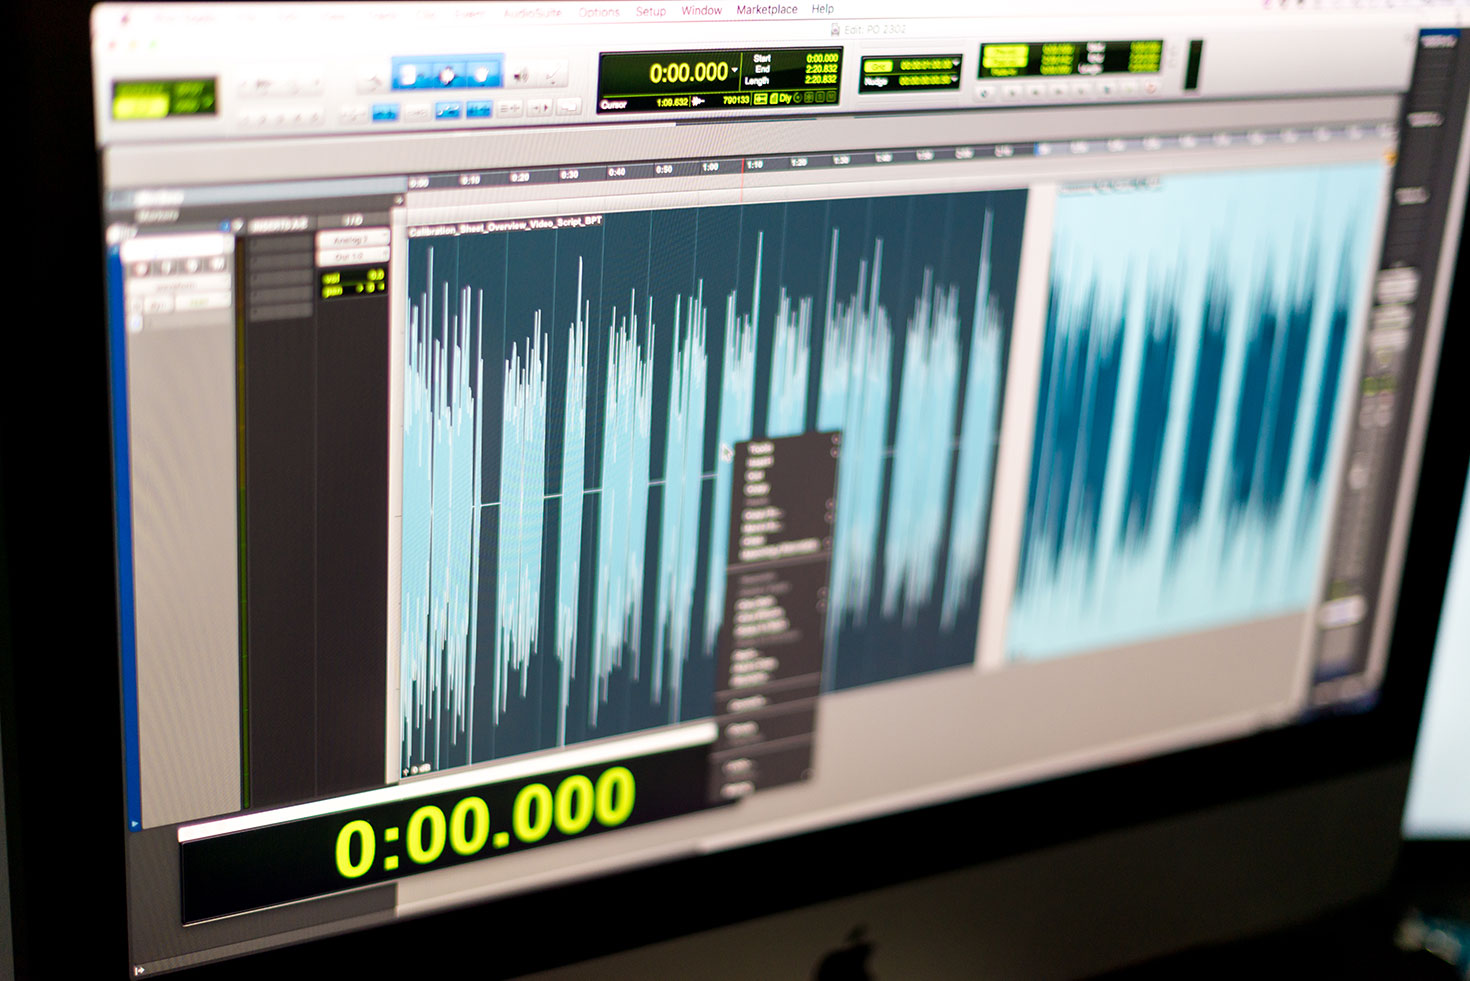 Pro Tools screen shows the audio waves of a voiceover.